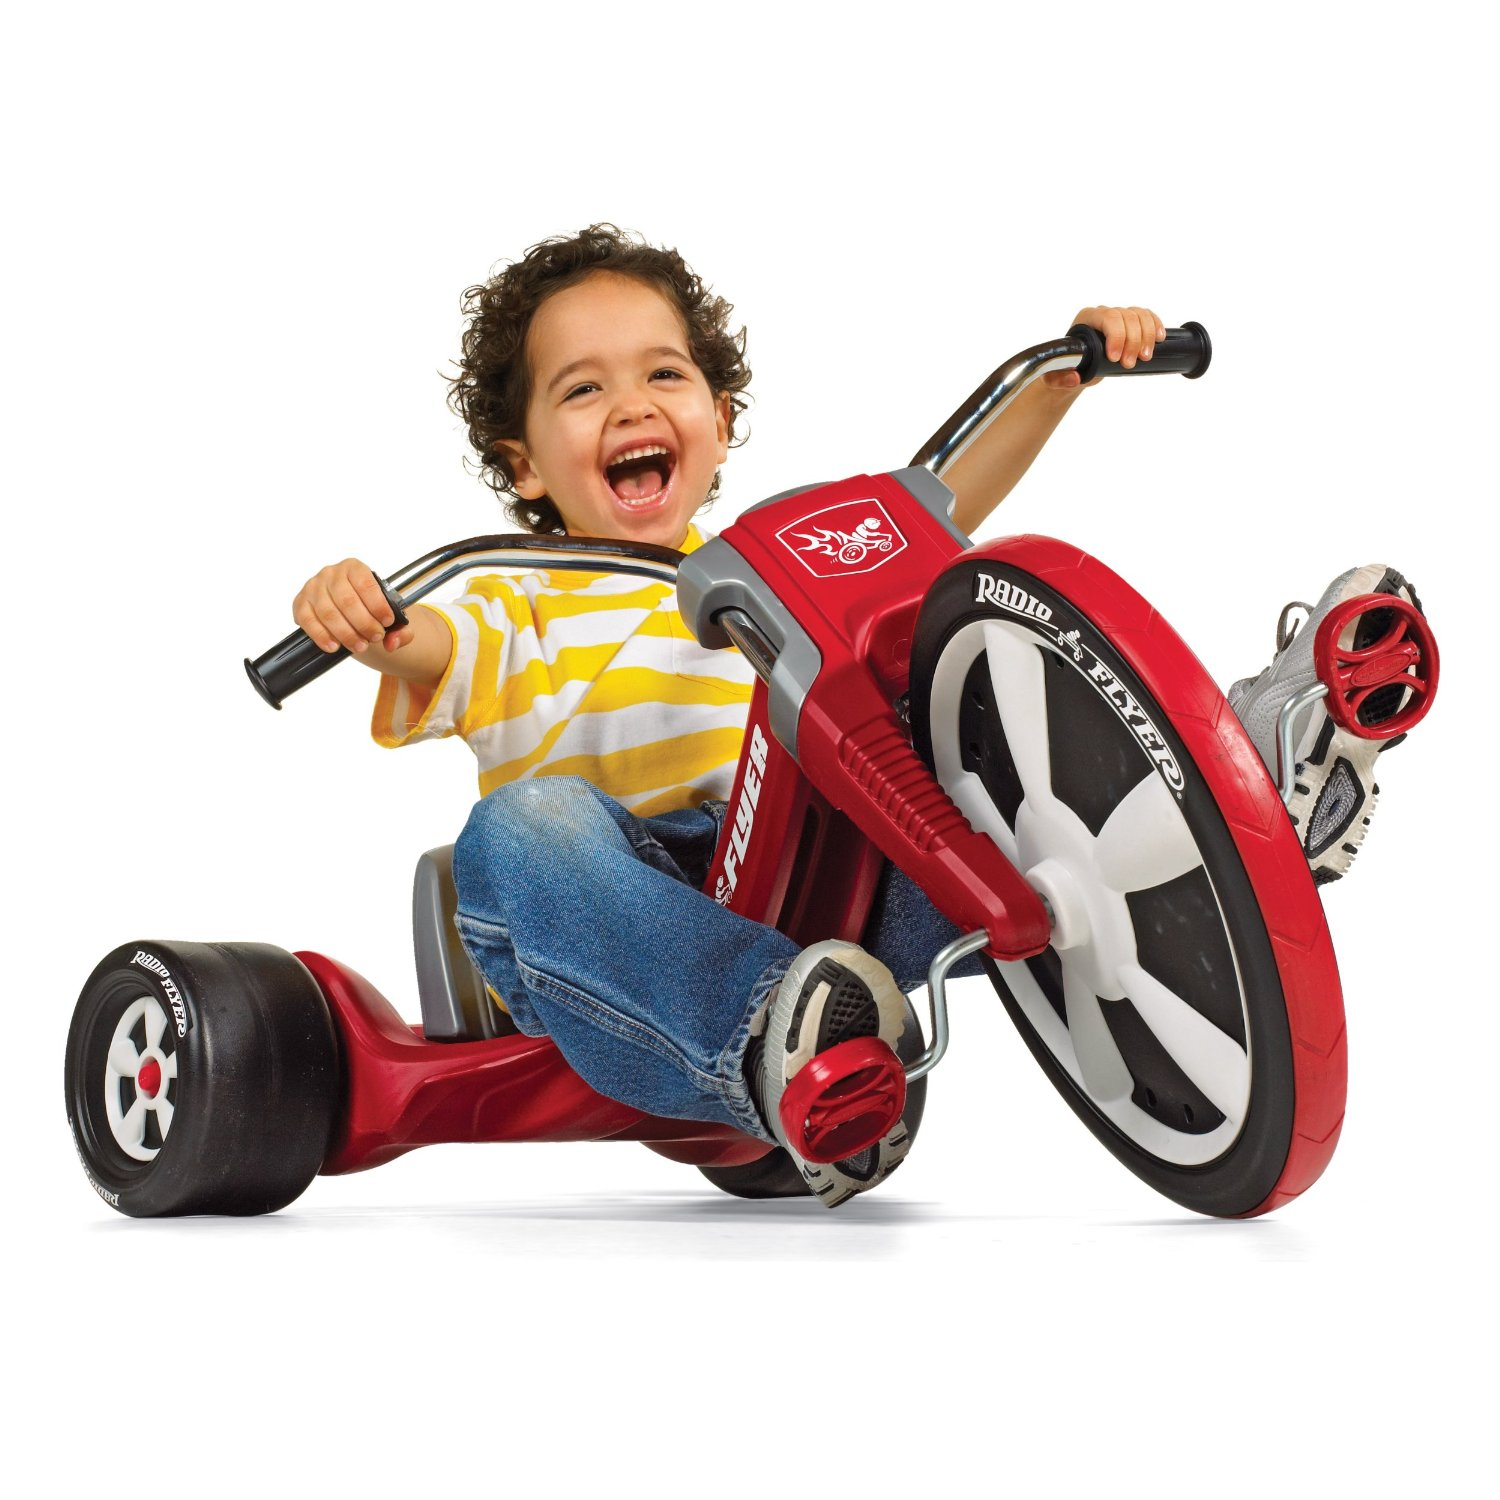 Radio Flyer Chopper Style Tricycle, image